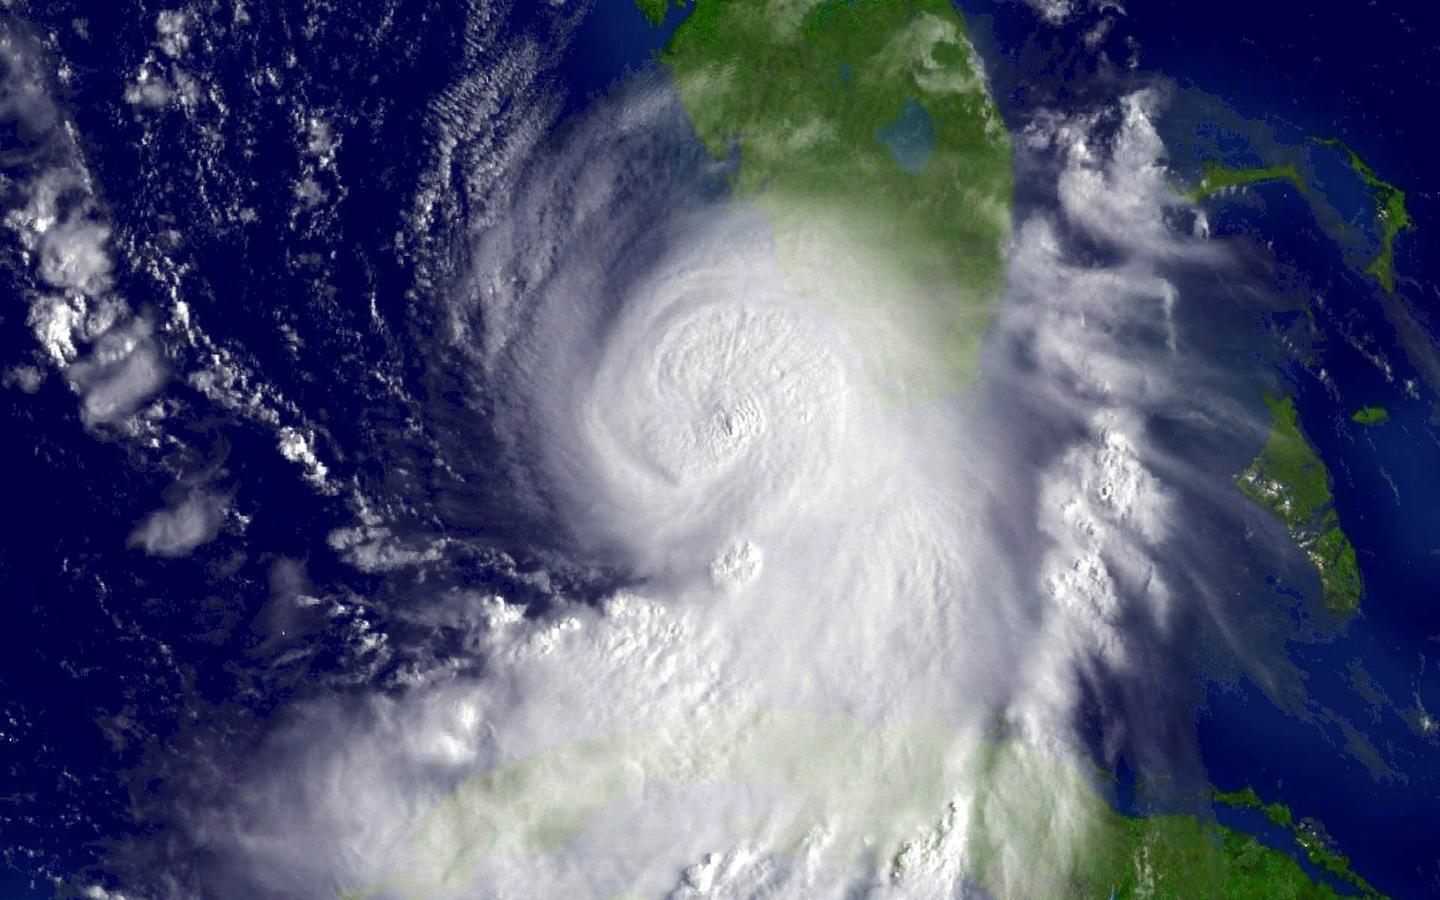 Hurricane Katrina, seen here, is tied with Hurricane Harvey as being the costliest tropical cyclone on record